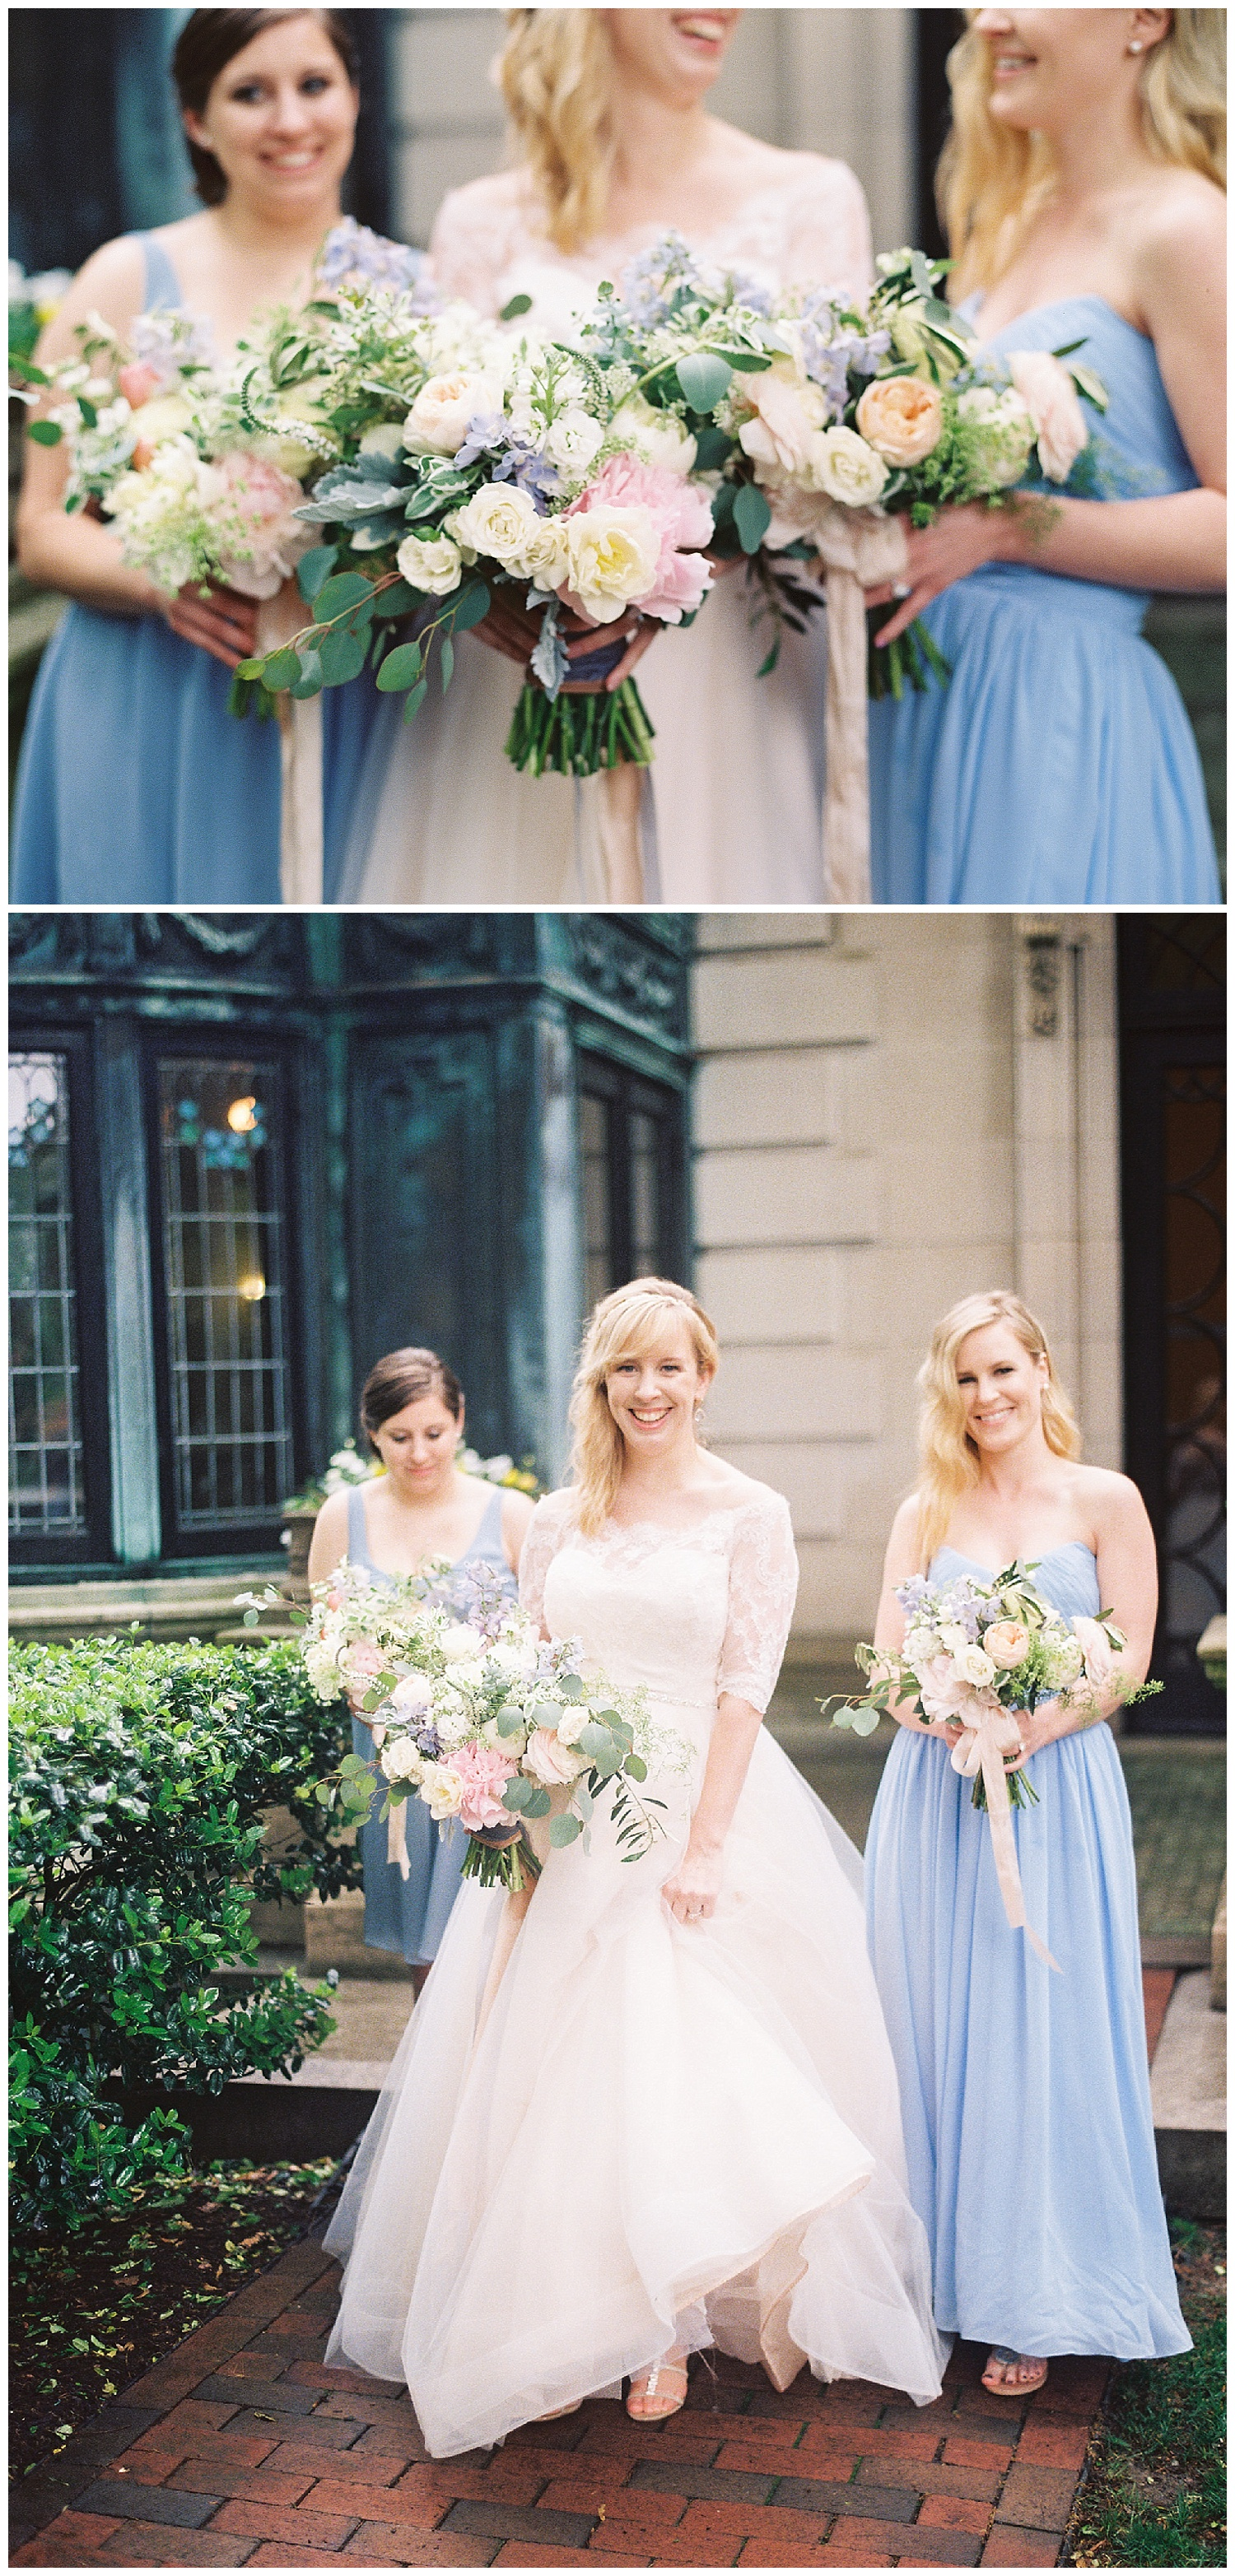 Organic florals and dusty blue dresses are the way to my heart!